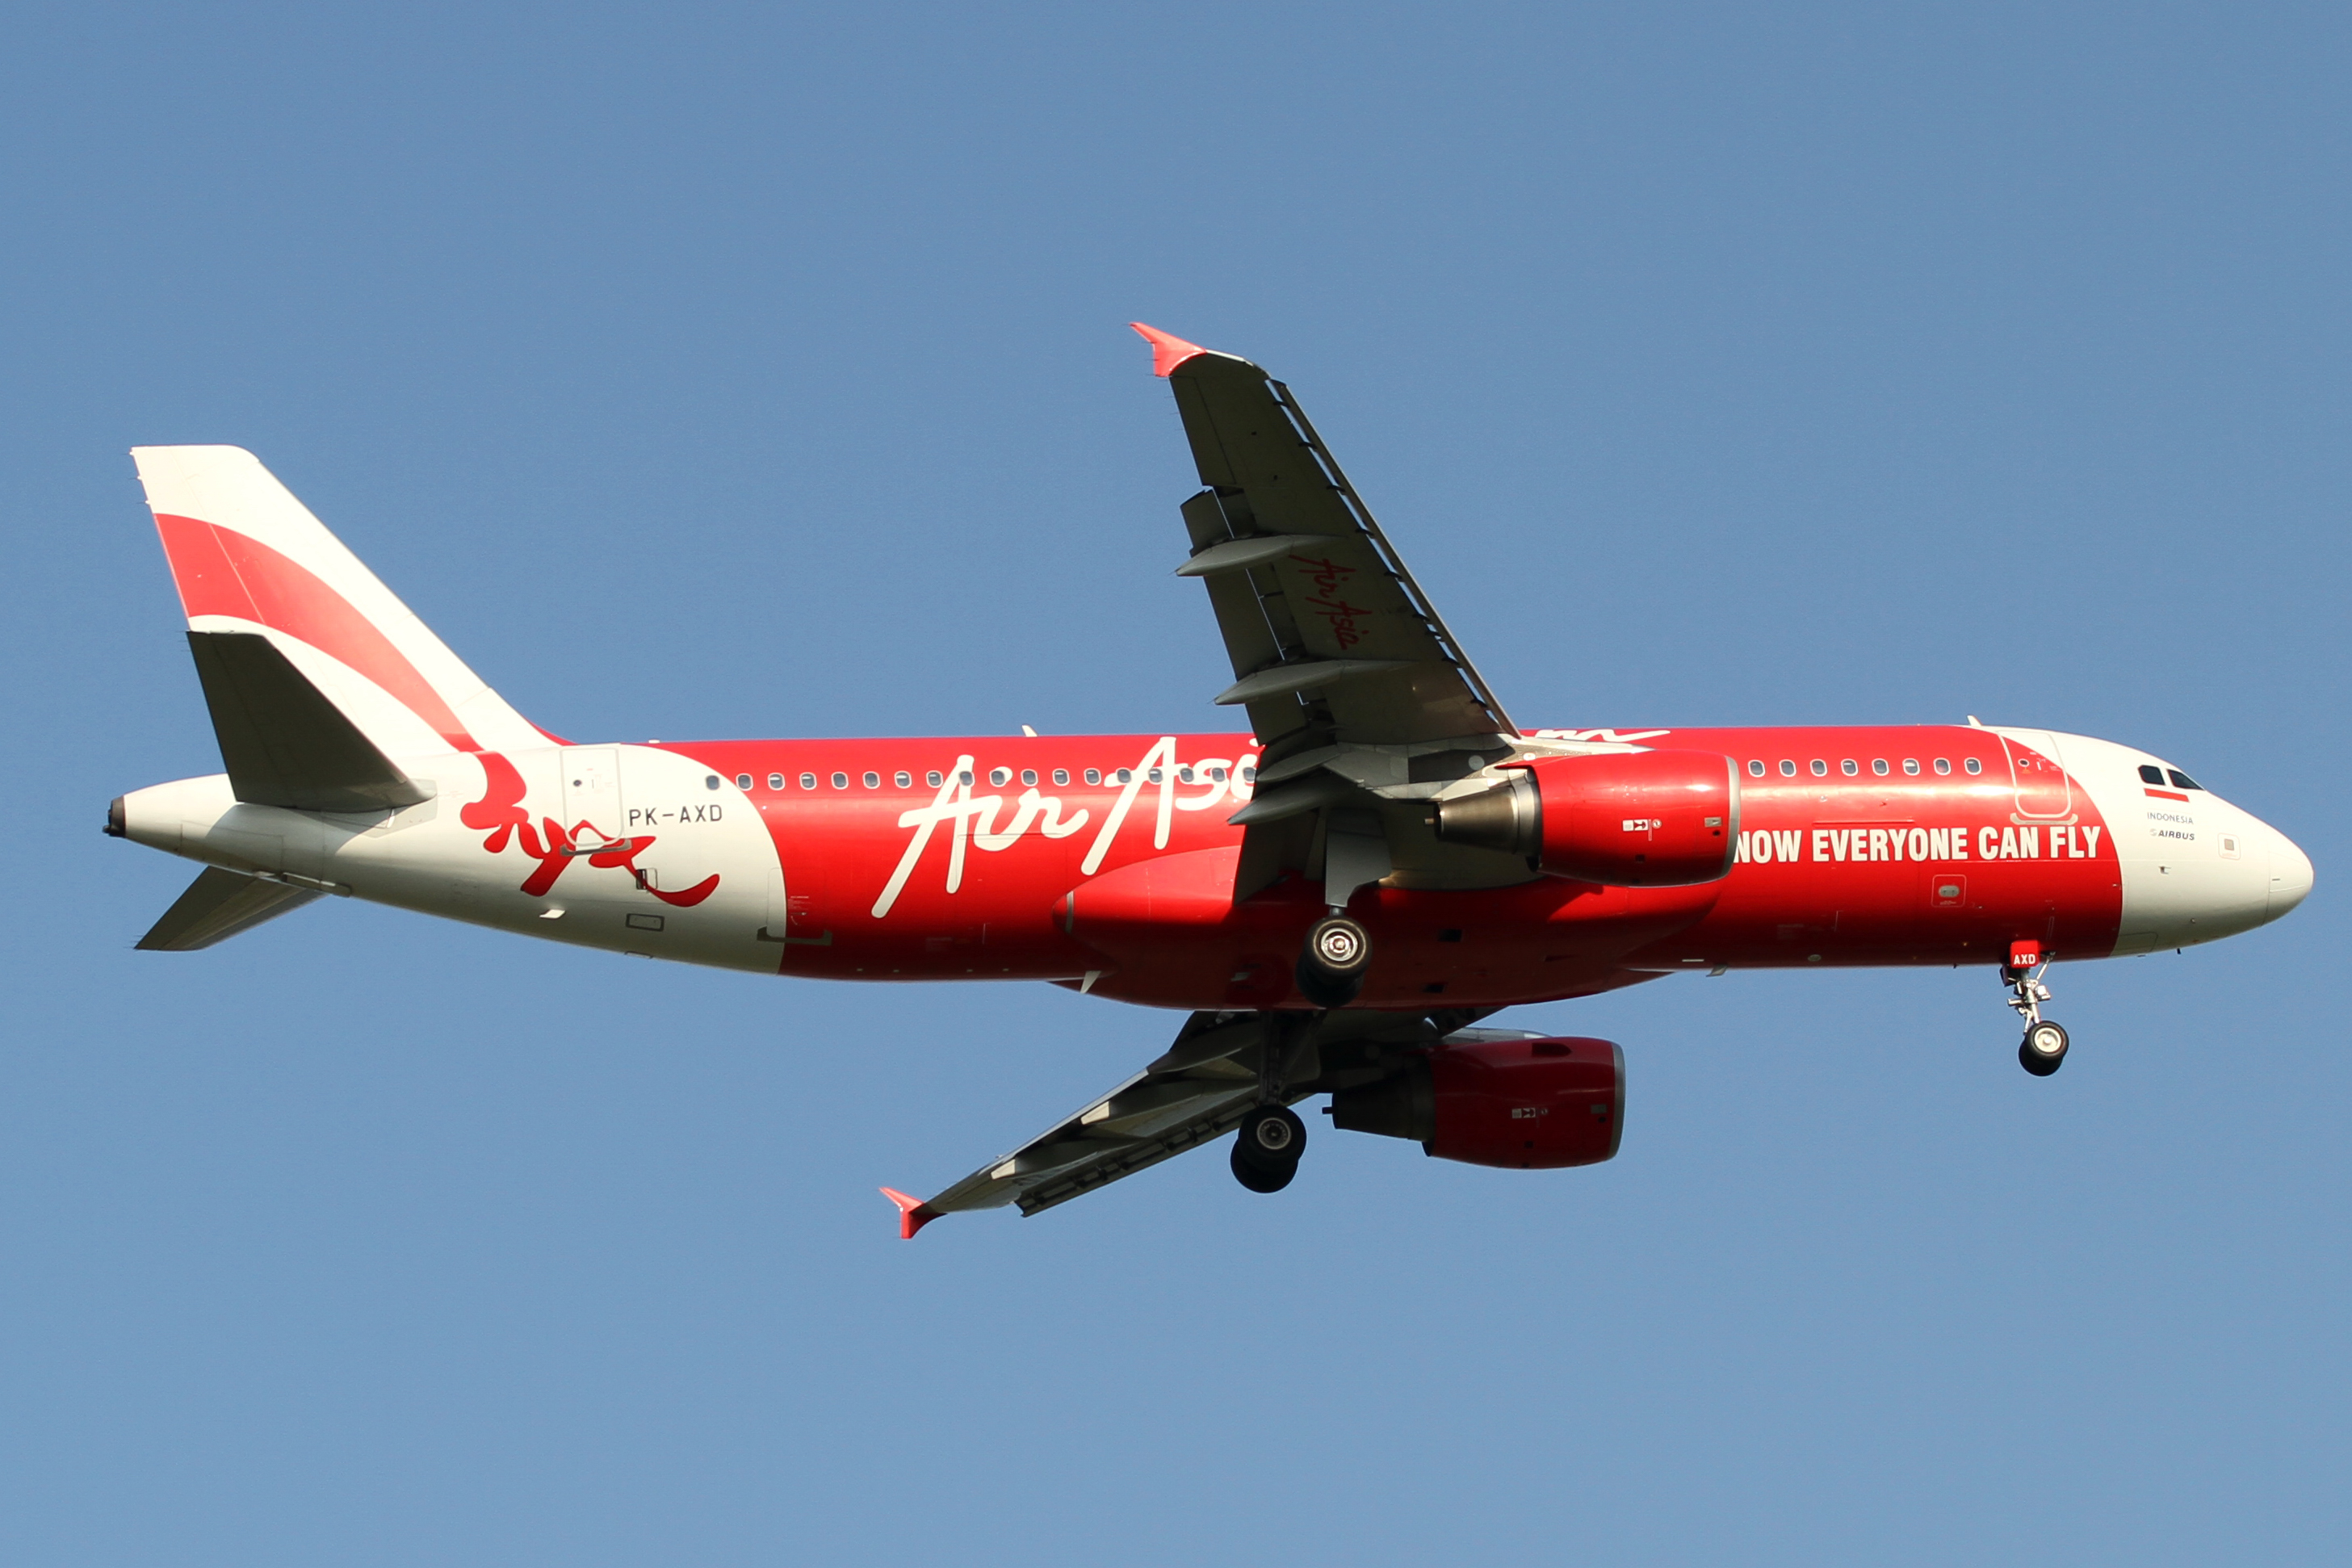 Air Asia India Offers Rs. 1,399 Tickets In Limited-Period Scheme